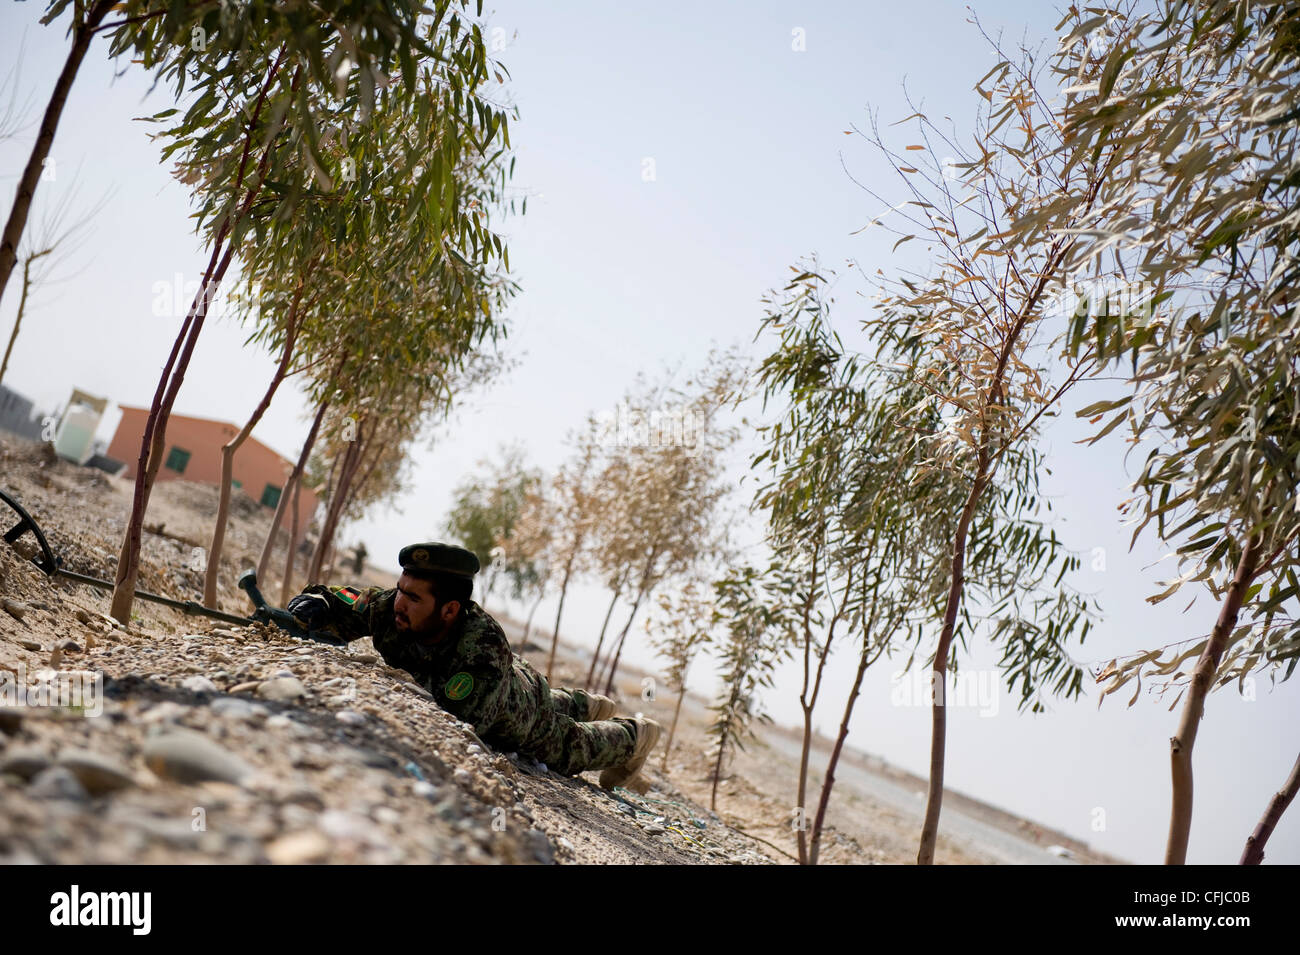 KANDAHAR, Afghanistan - Fakhr Uddin, an Afghan National Army soldier, trains during practice counter-IED operations - Stock Image